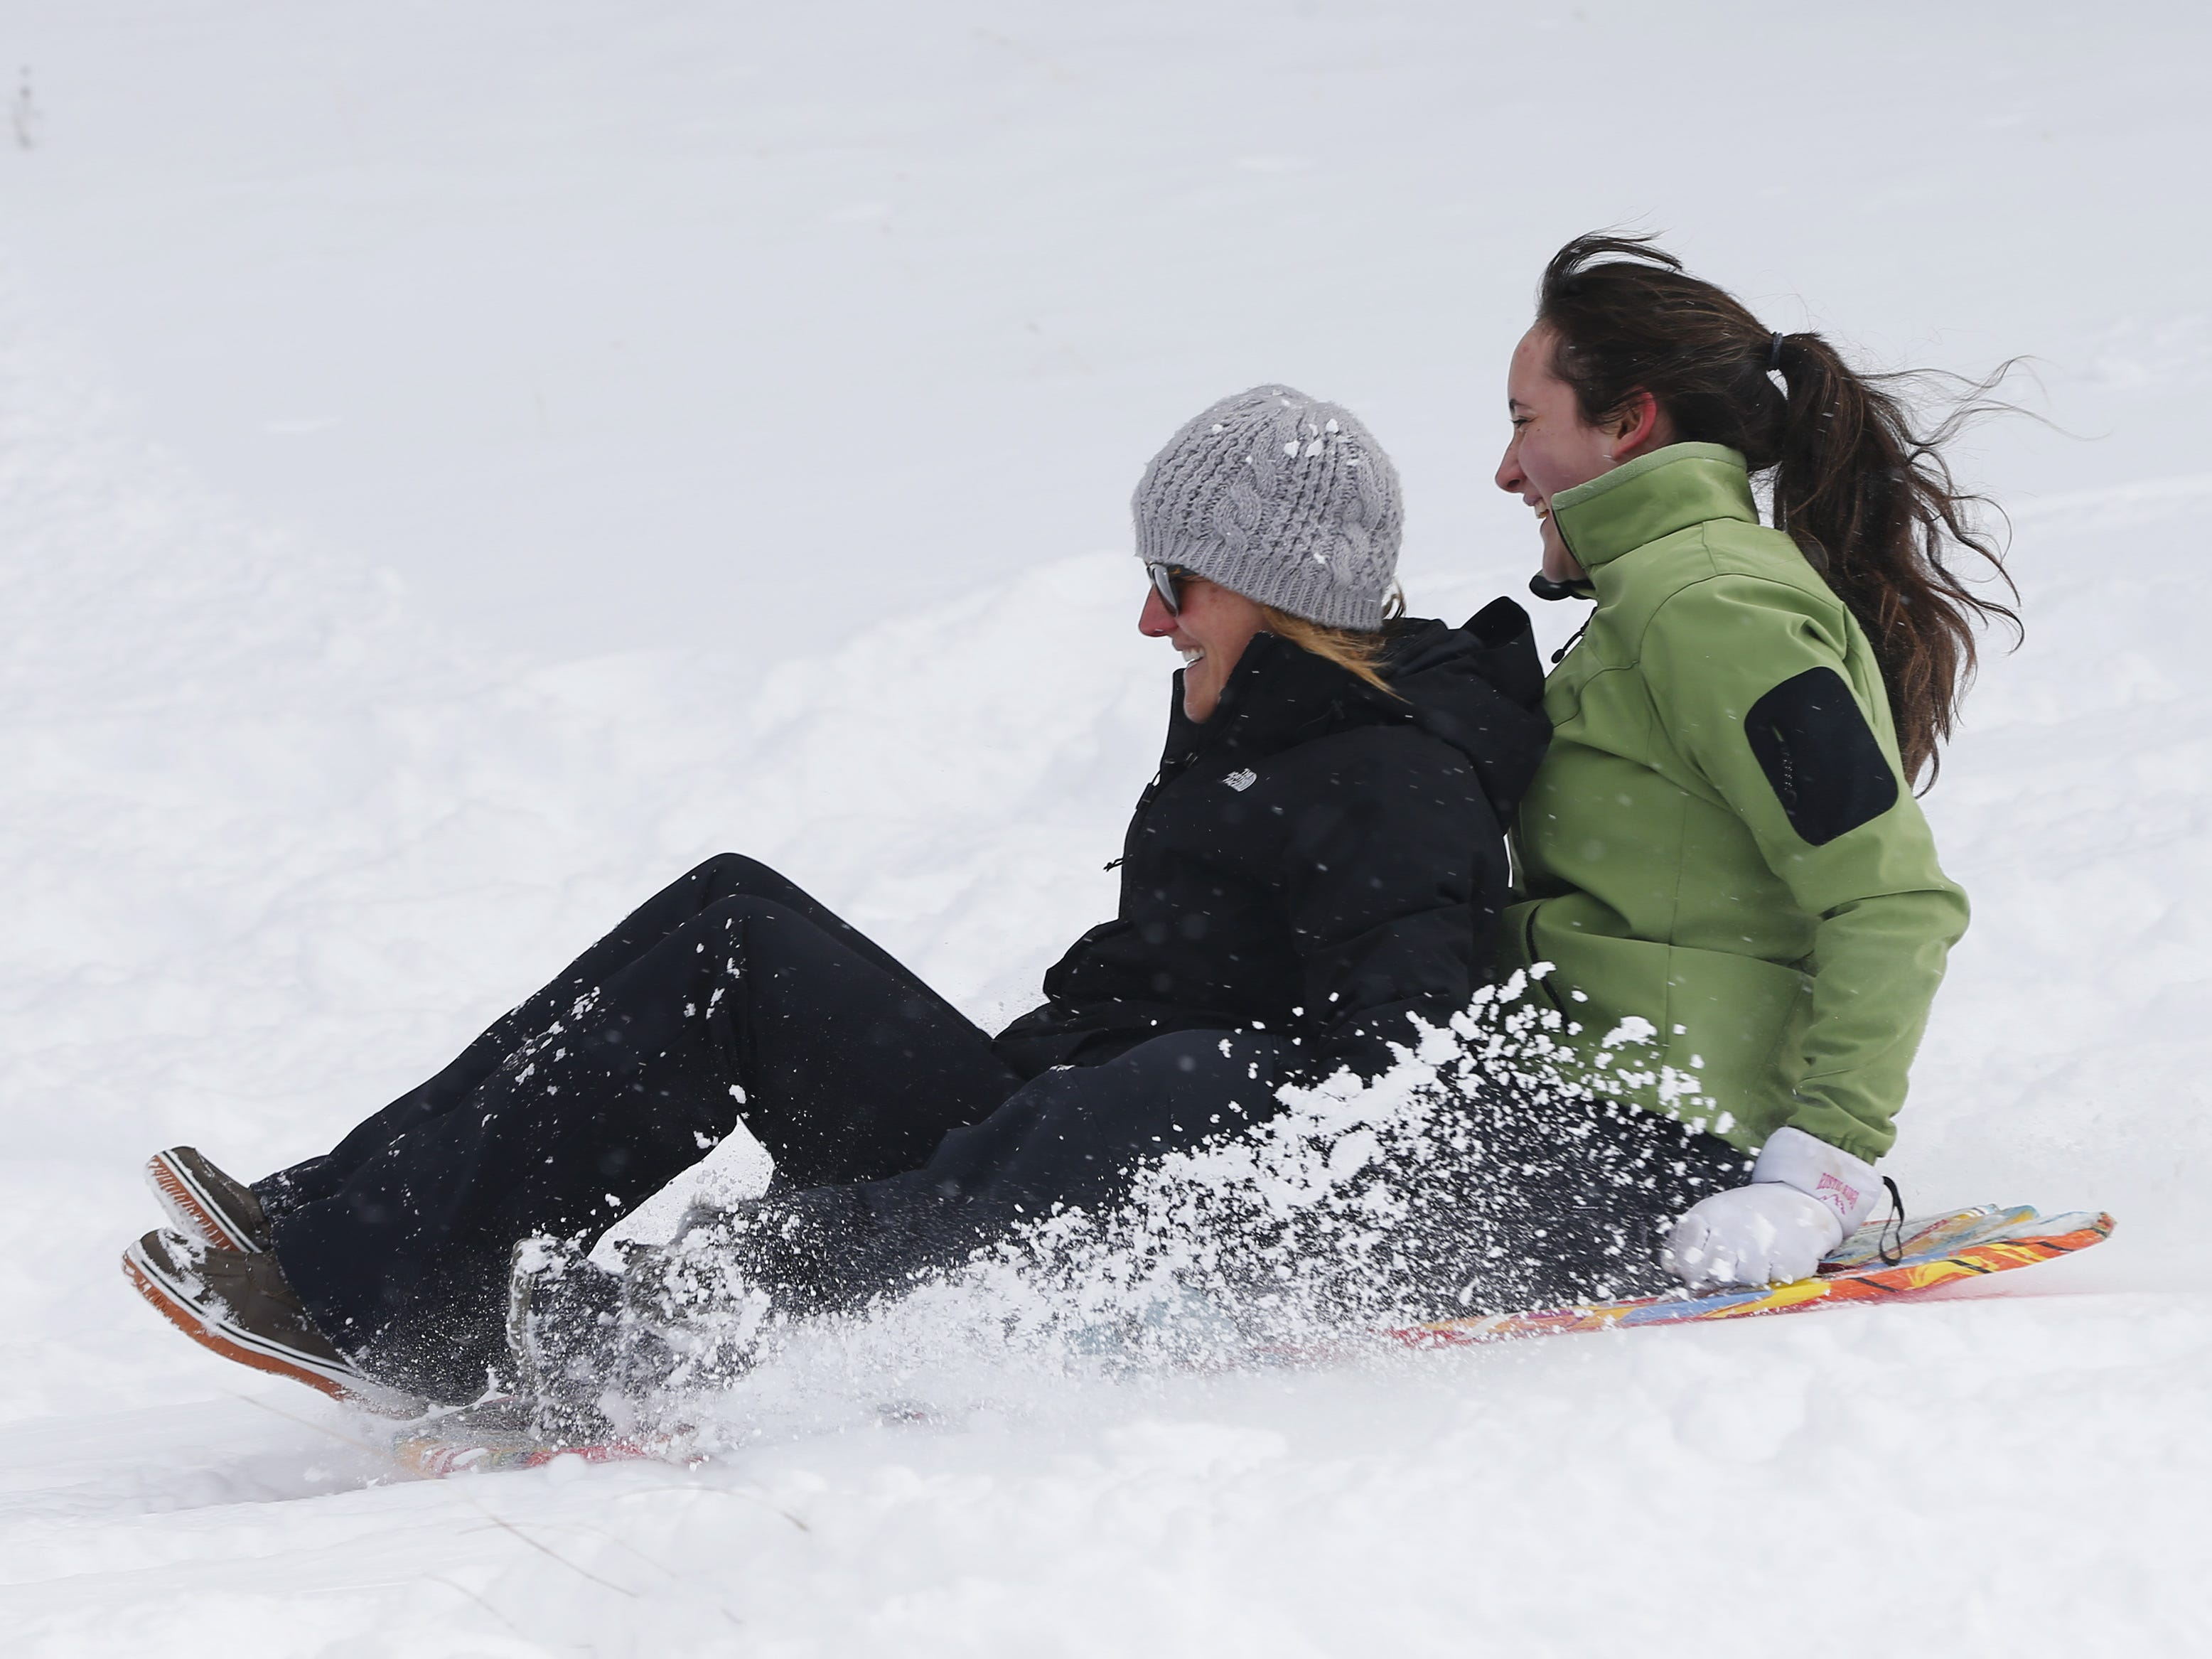 K.C., left, and Noe Rhon sled down a hill in Flagstaff, Ariz. Feb. 18, 2019.